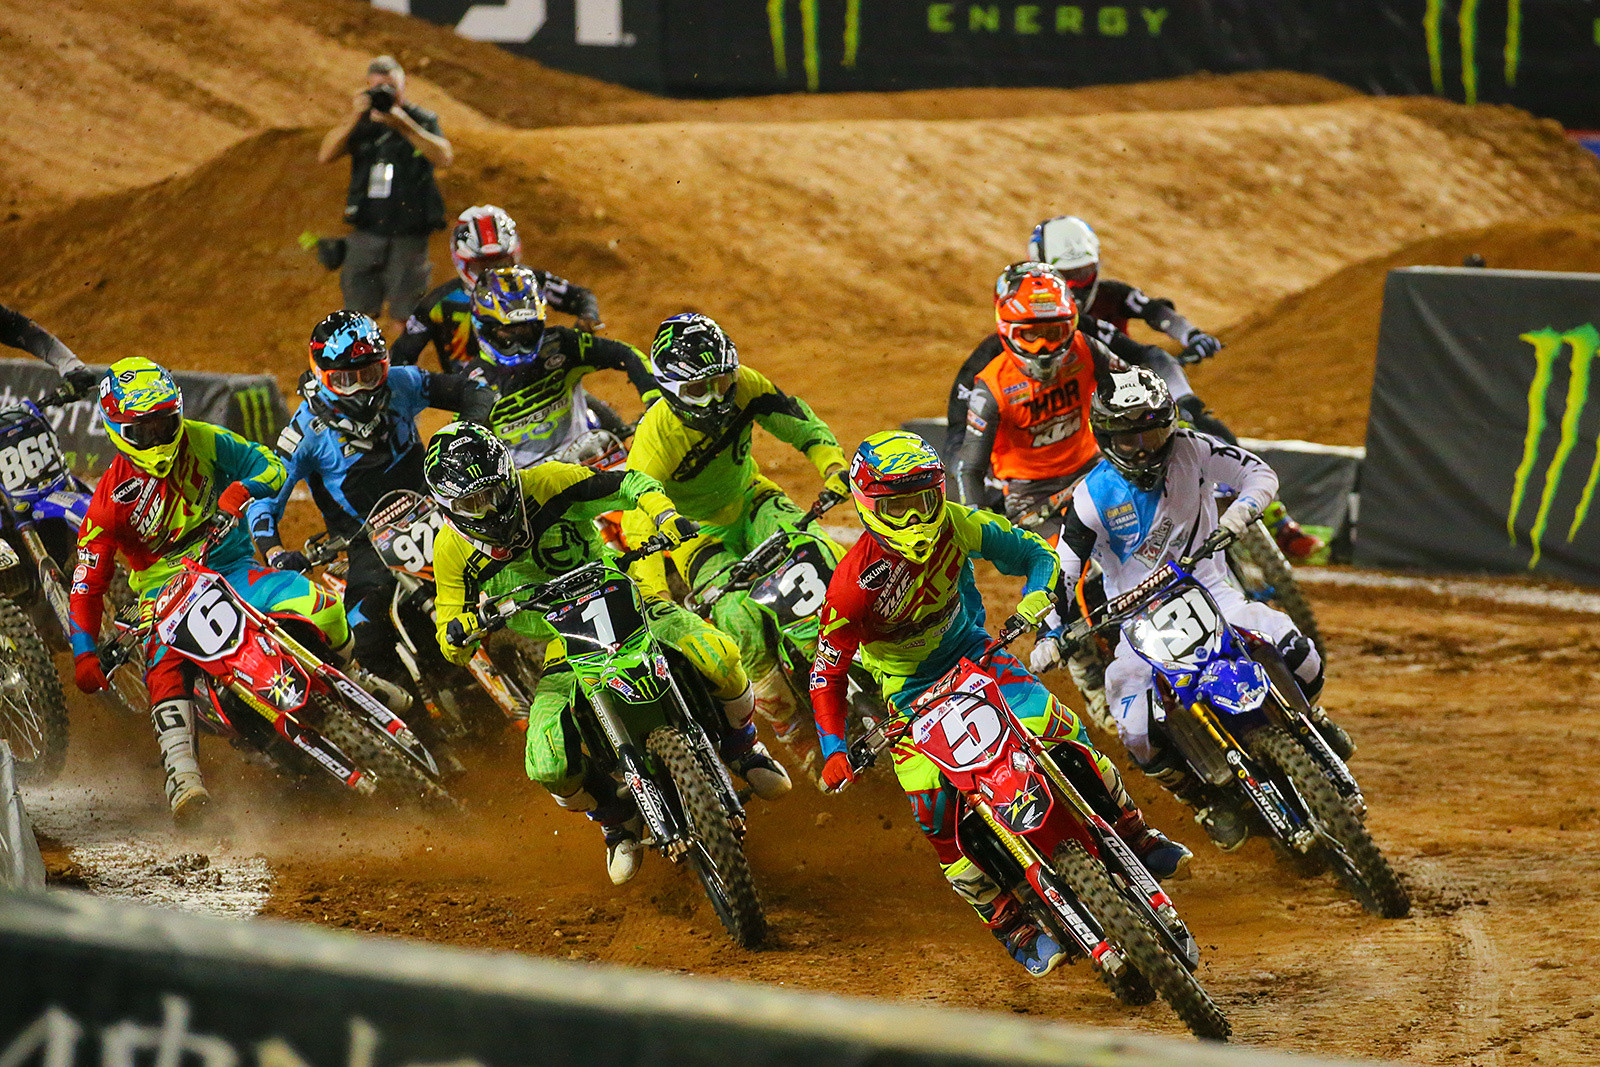 250 AX Heat One Start - Photo Blast: Atlanta Arenacross - Motocross Pictures - Vital MX